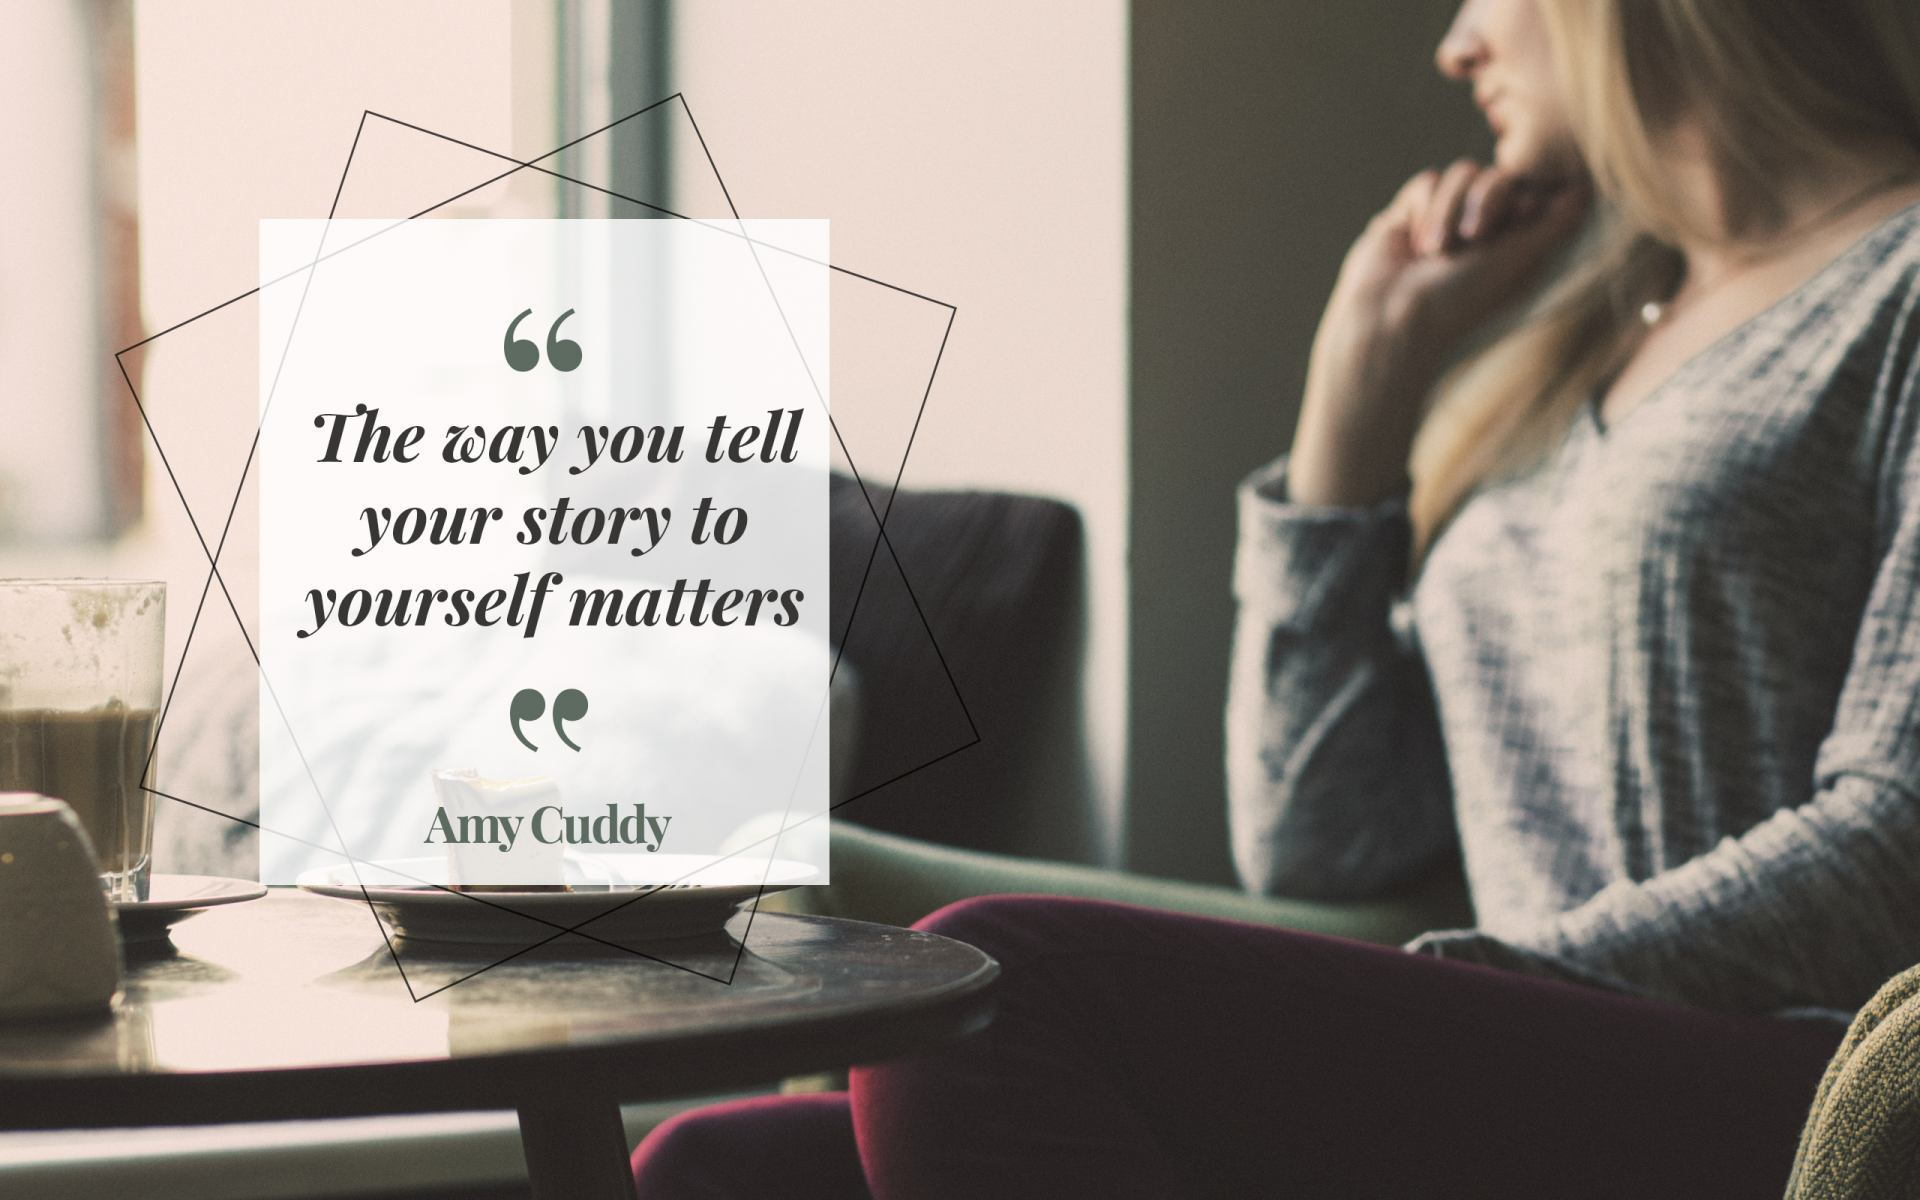 4 66 The way you tell your story to yourself matters 99 https://inspirational.ly